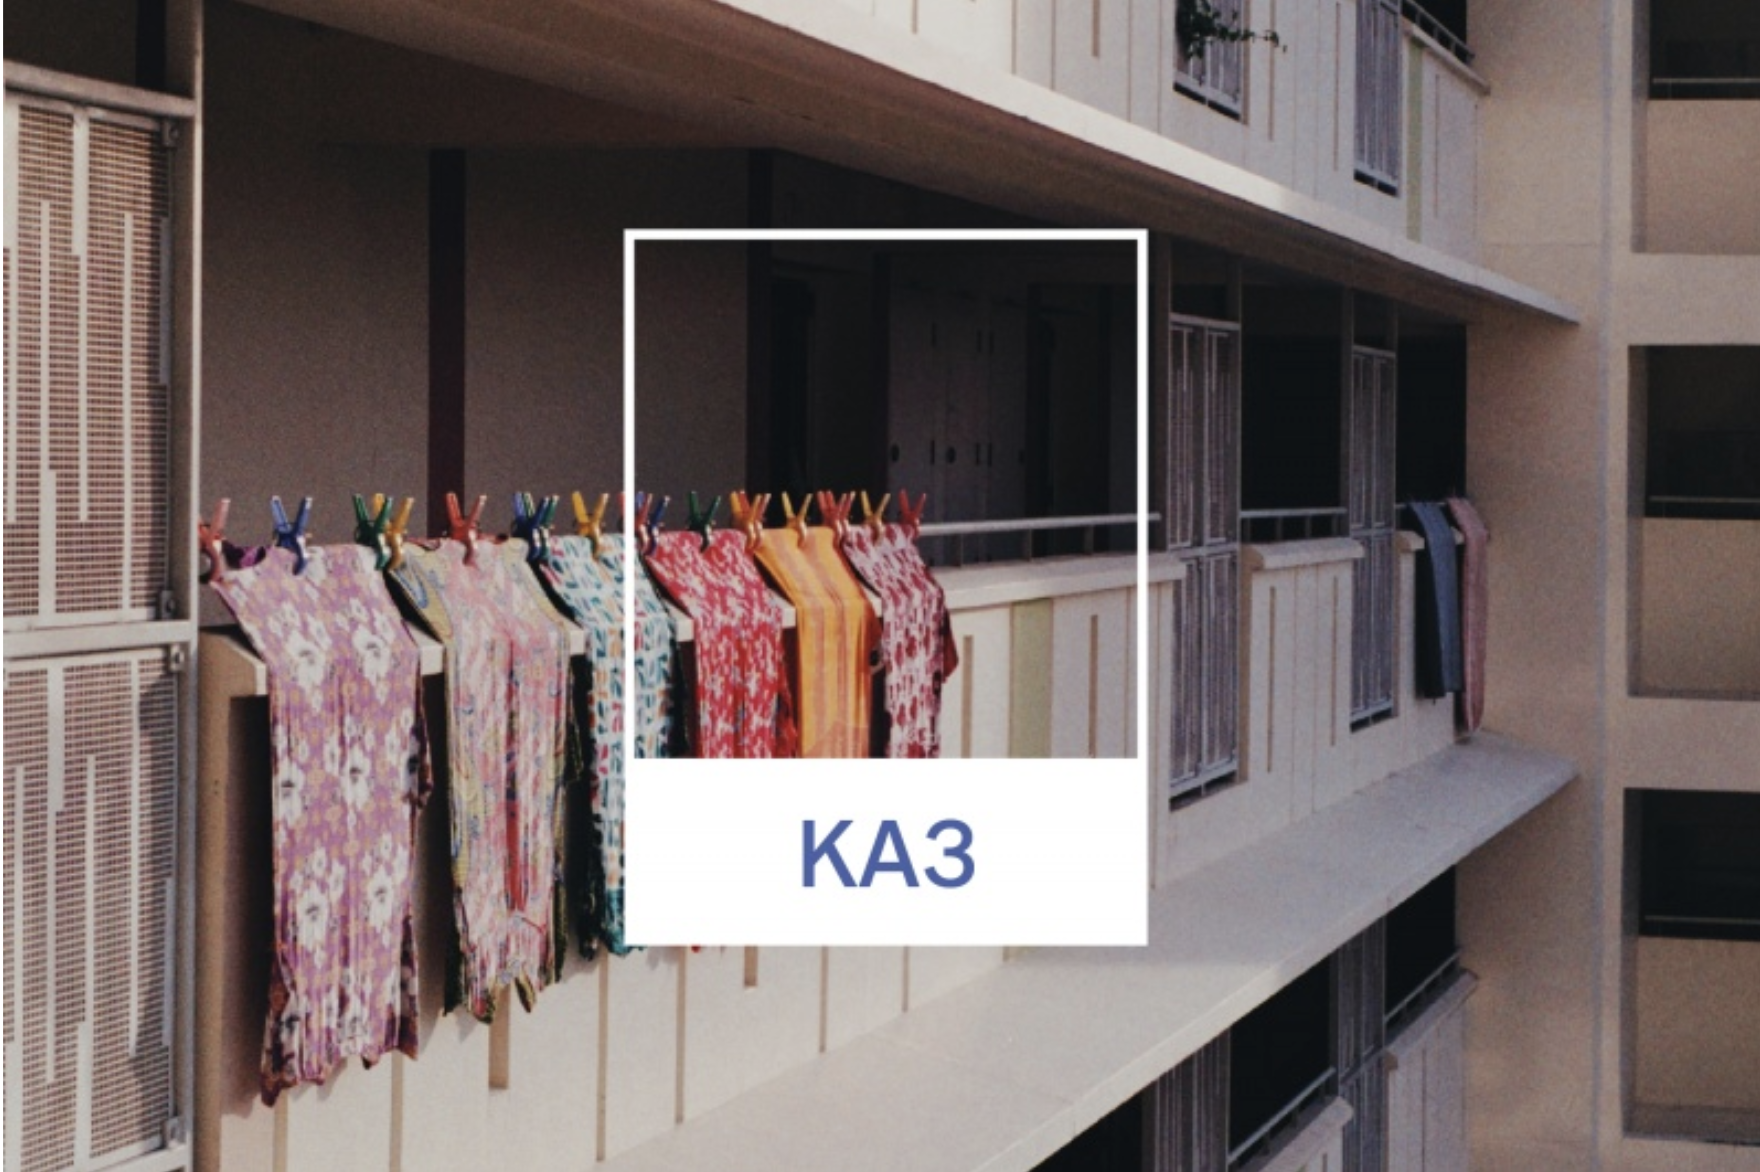 Introducing KA3    October 25, 2019 — Let color guide your senses with KA3, the latest film emulation preset now available for members. Based on Kodak Ektachrome E100VS, KA3 has a vivid and saturated look that's perfect for still life, nature, and food photography.